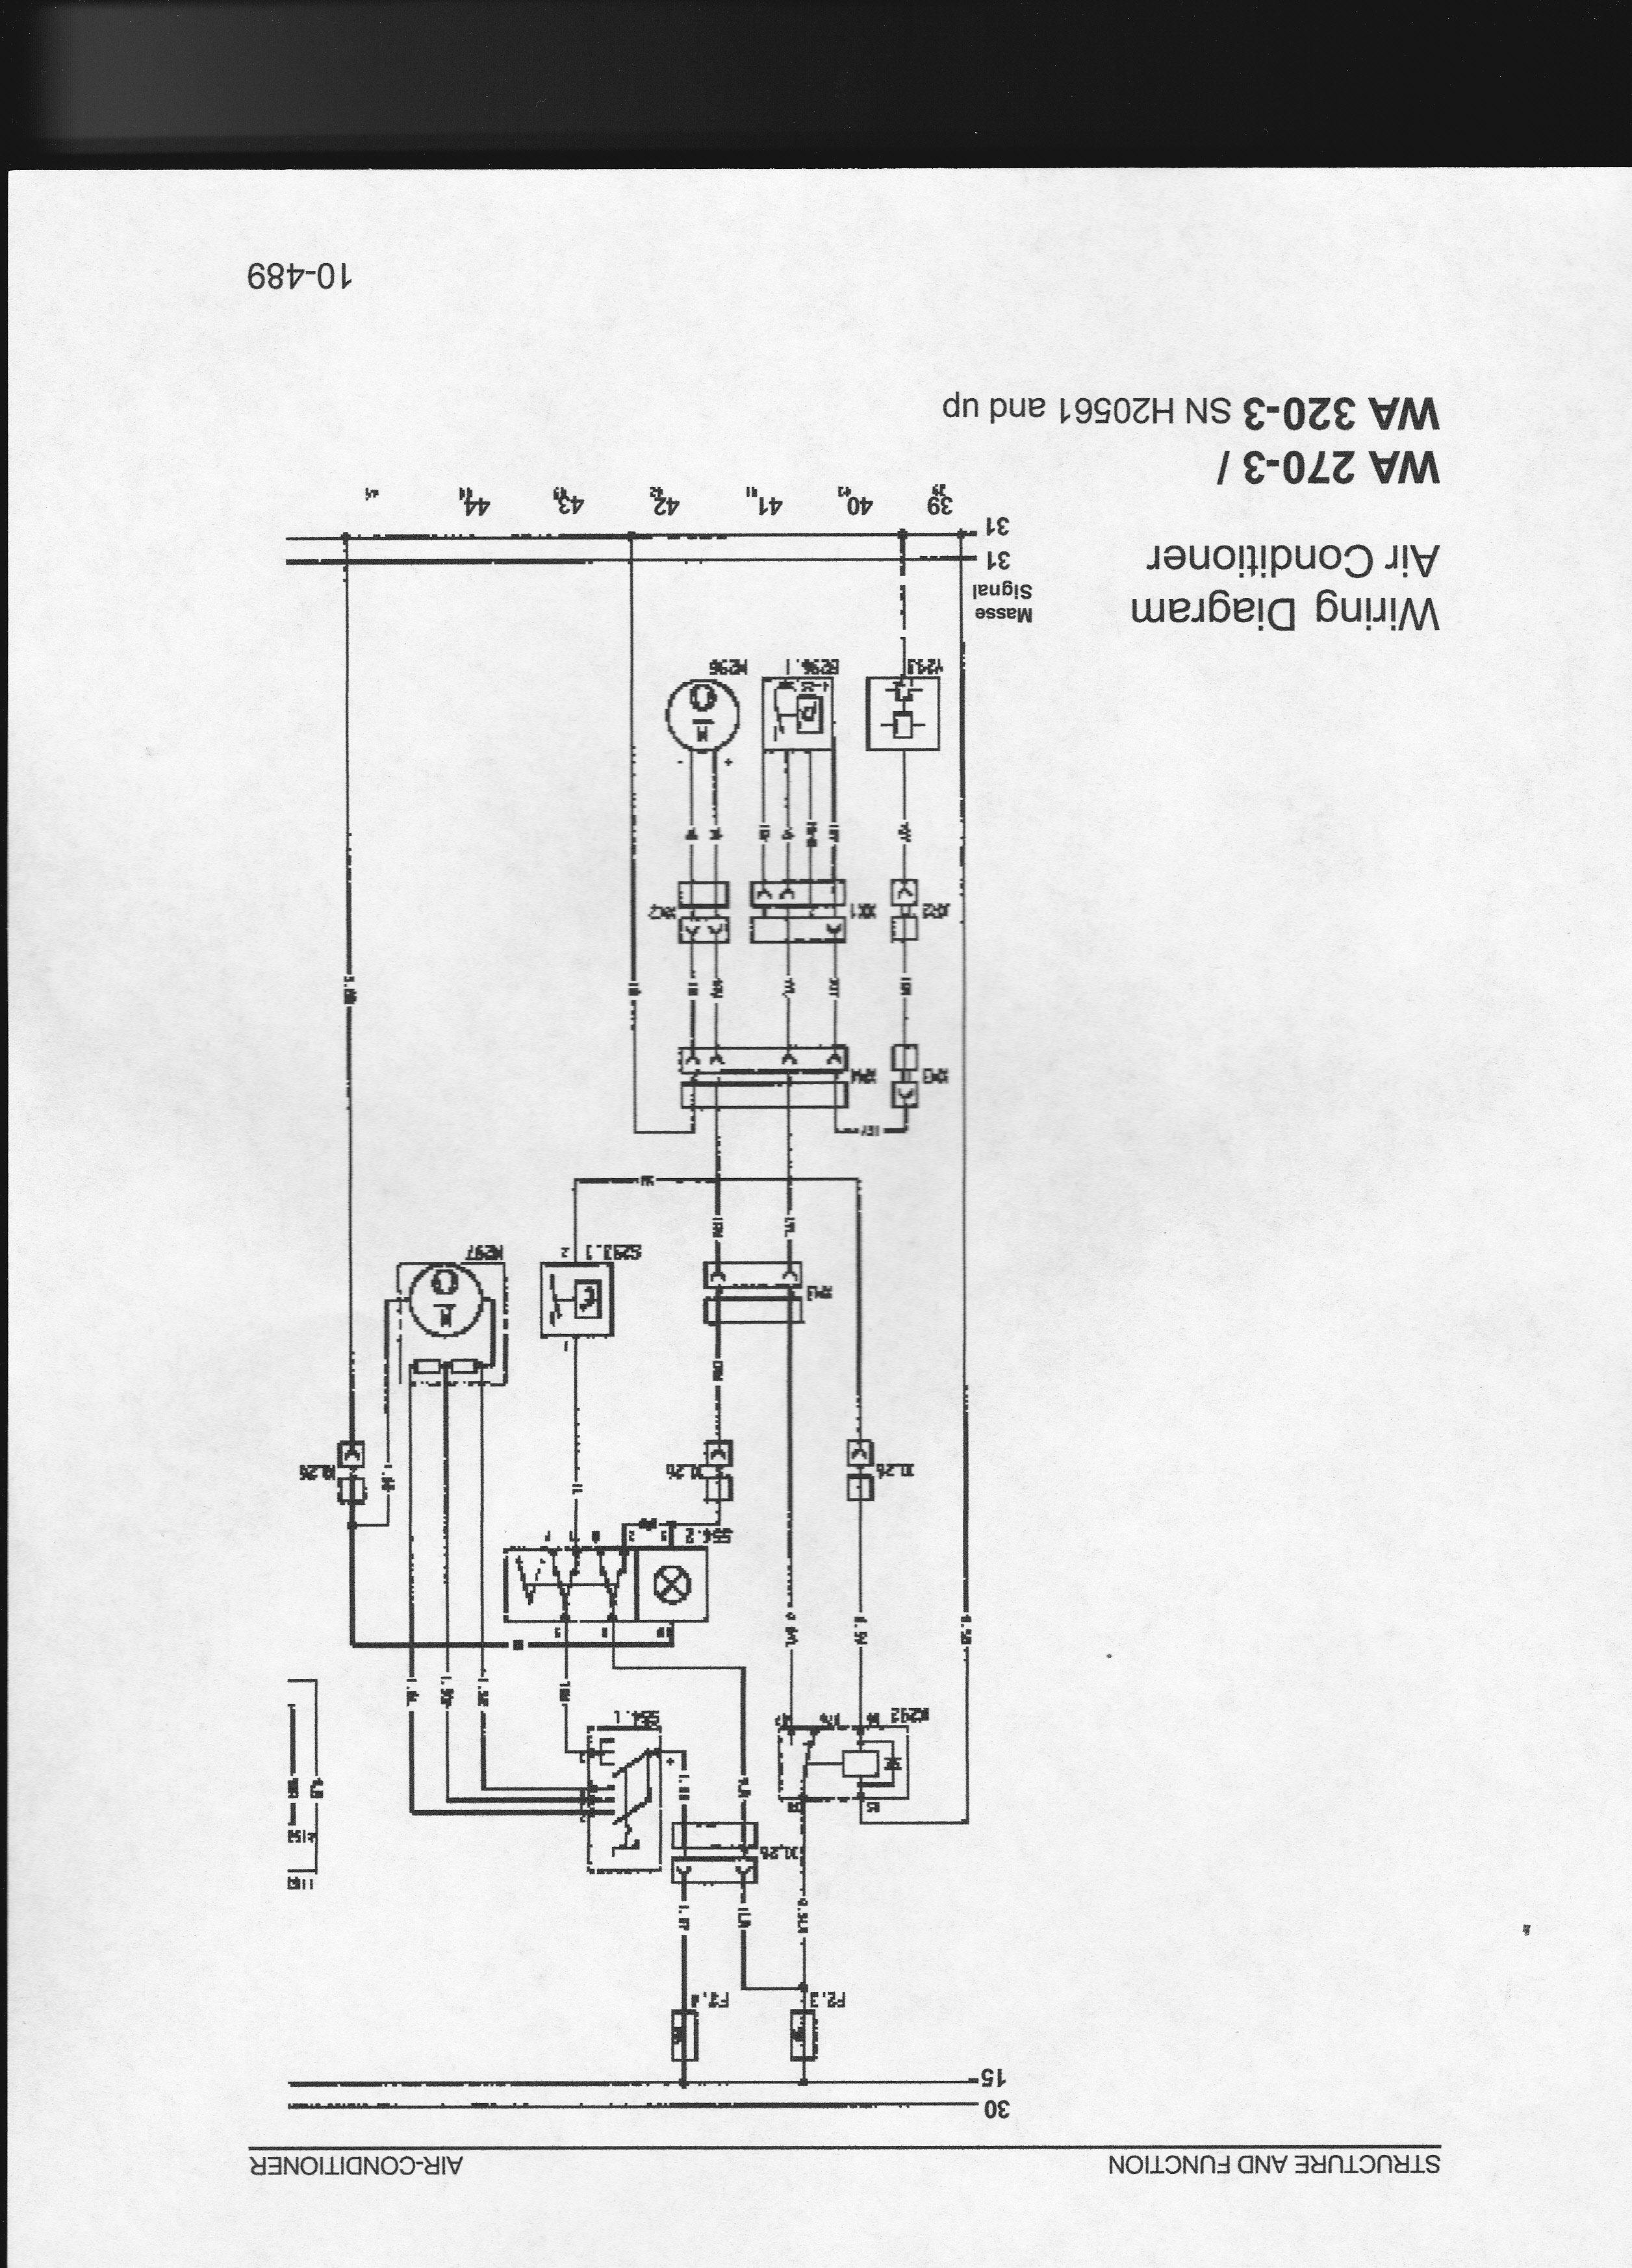 Wiring Luxaire Diagram Thjd36 Electrical Diagrams Thermostat For F5fp048 Trusted Dbuct072n125a Block And Schematic